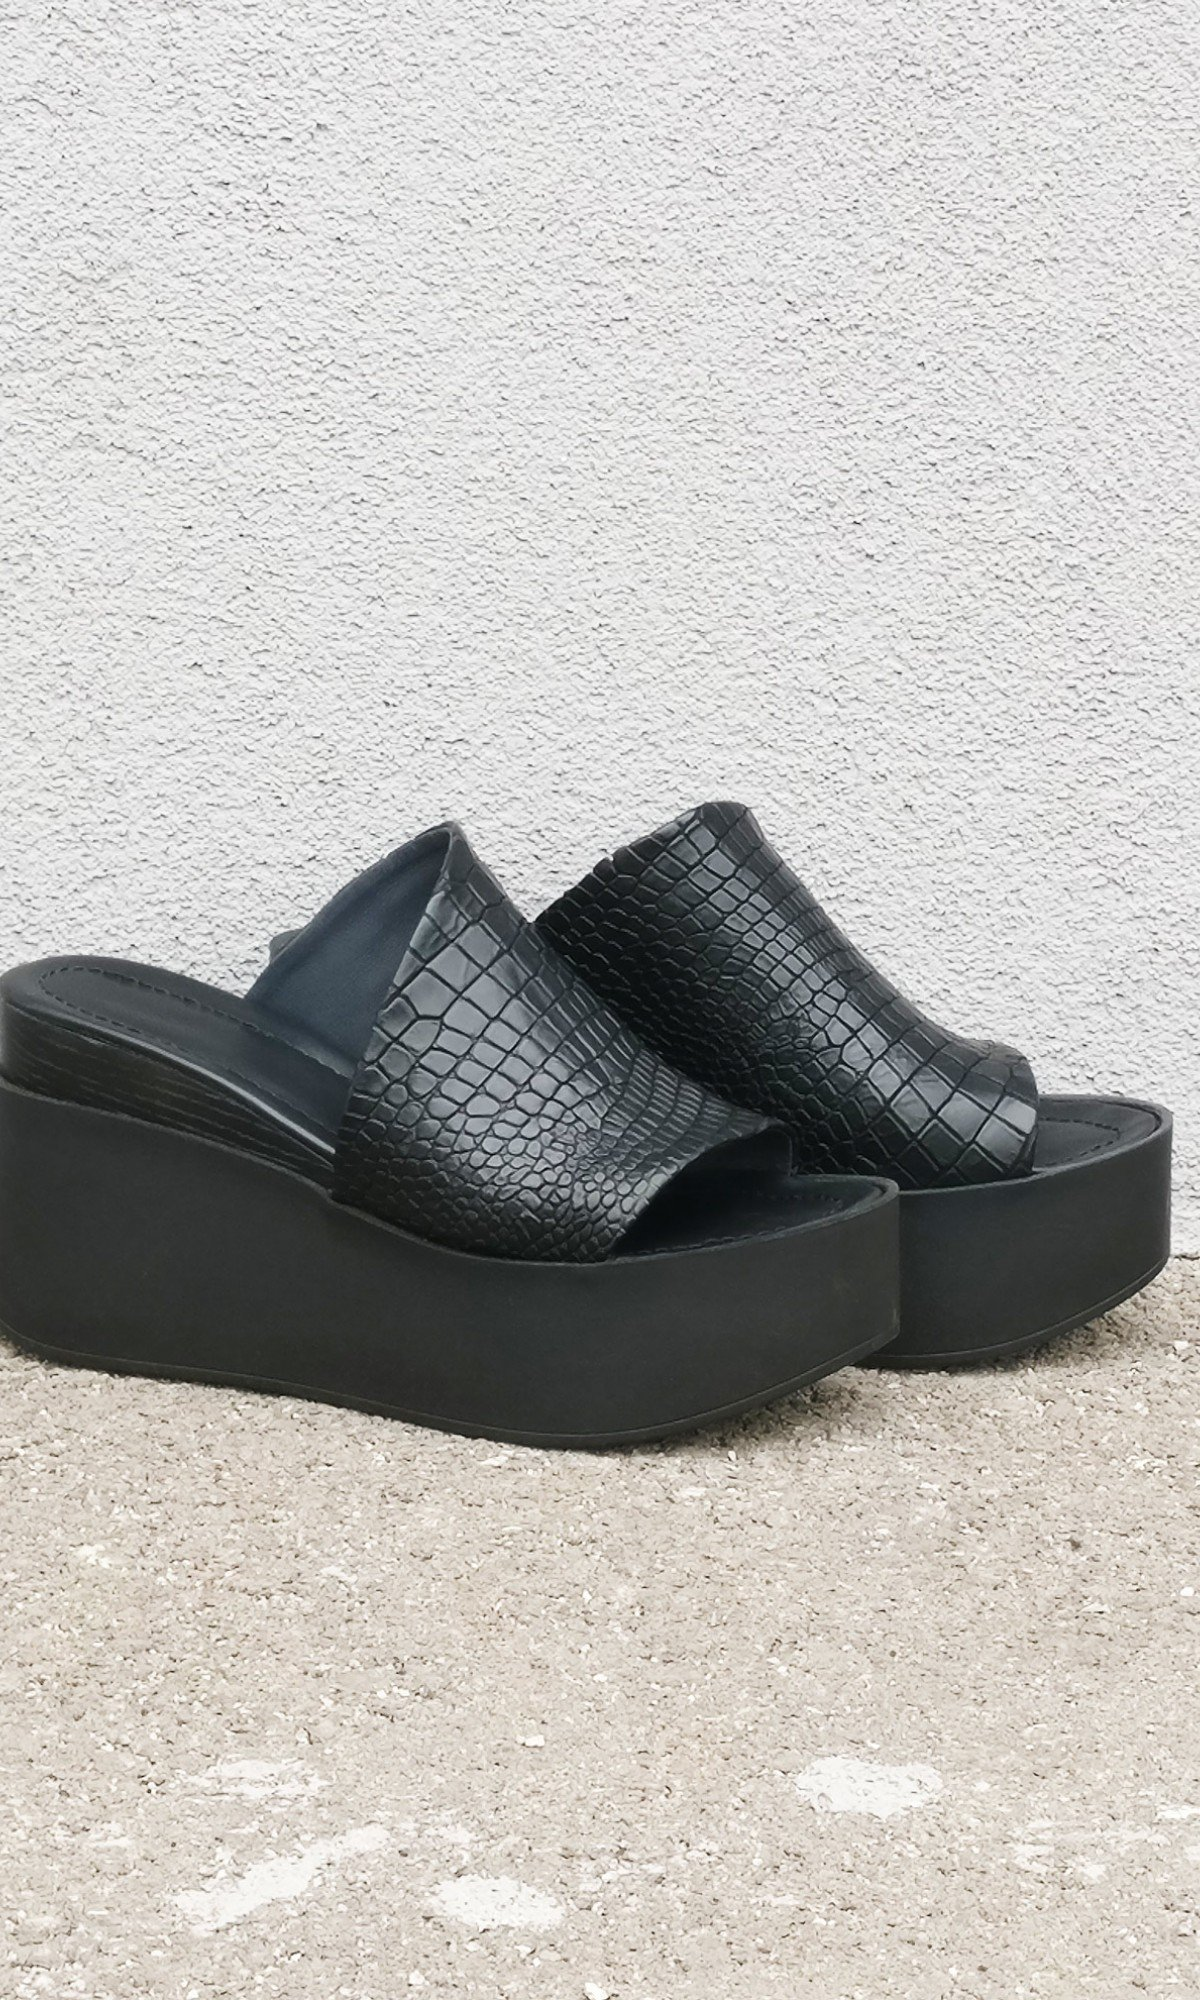 Croco leather Platform Sandals A26824